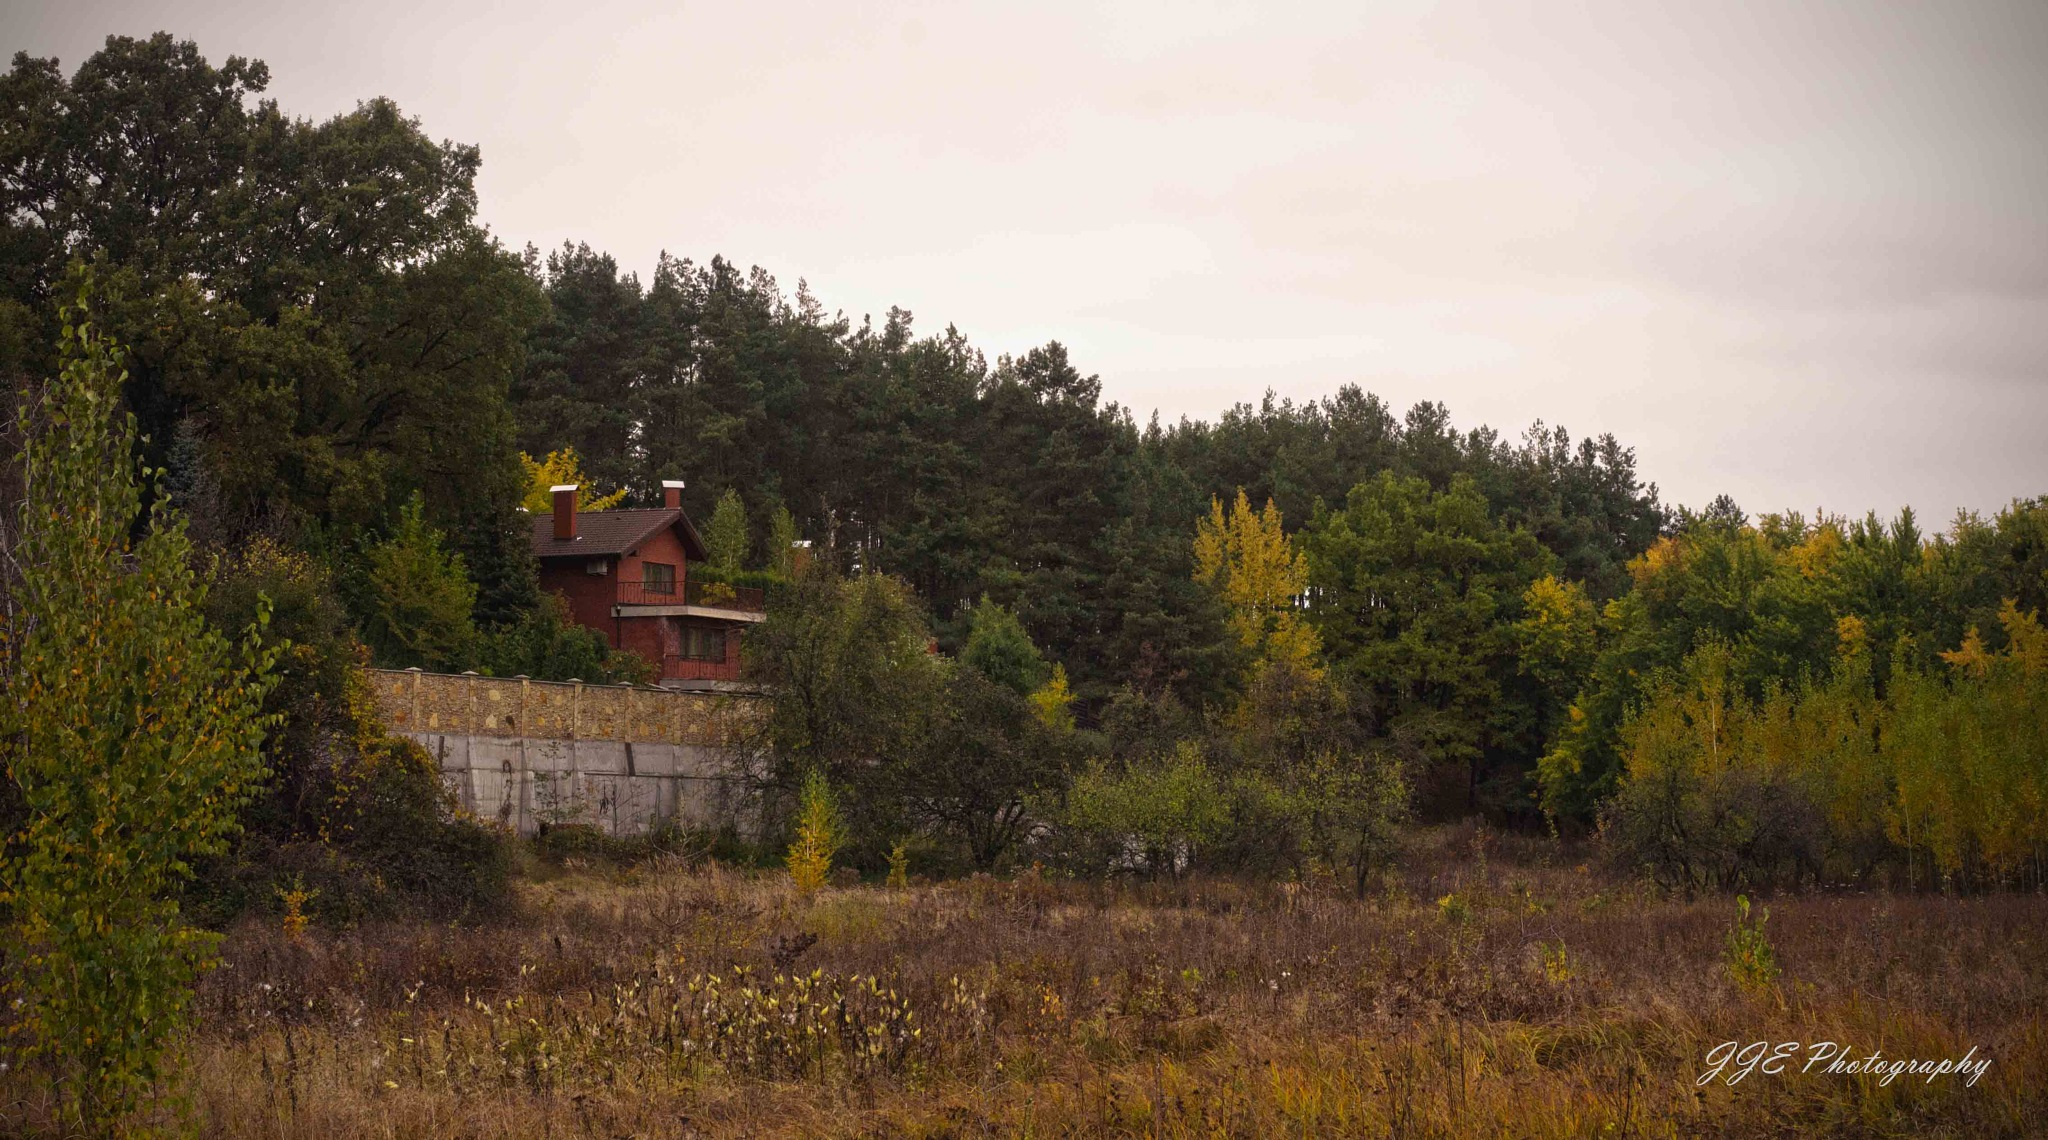 House in the forest by jassaj